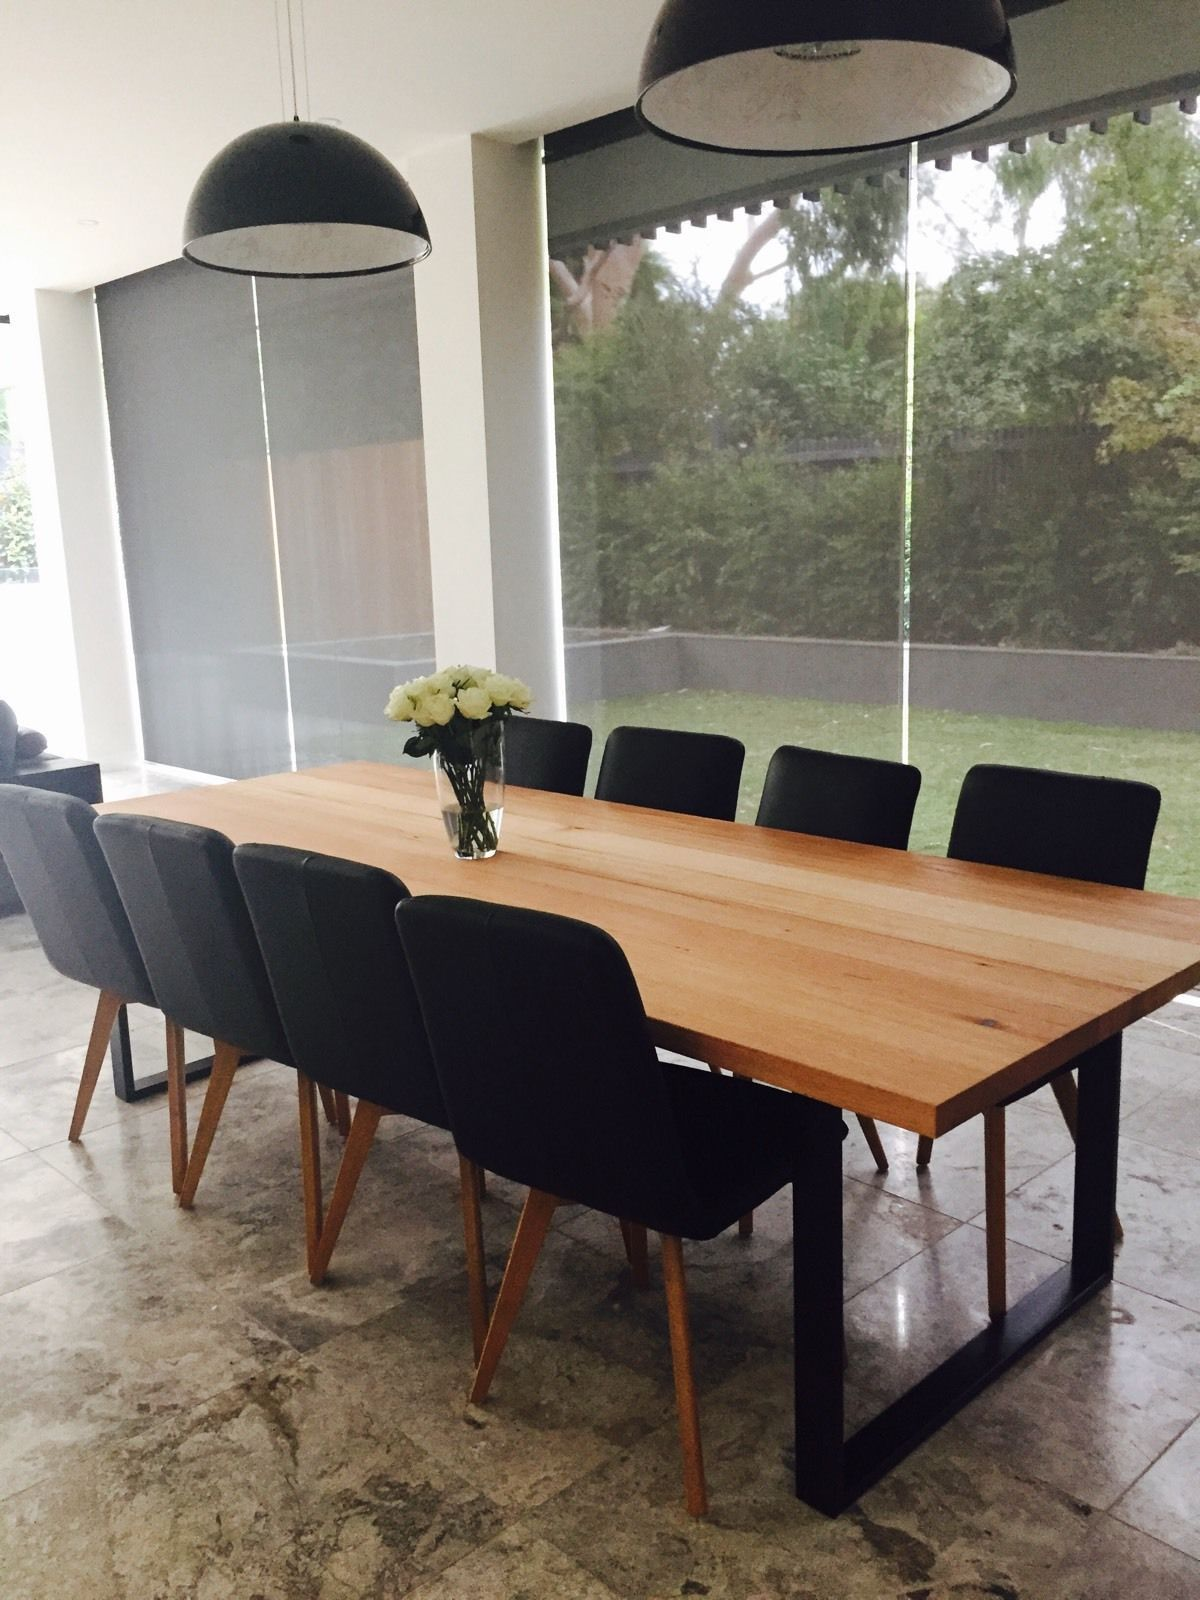 Large Dining Tables Storiestrending Com In 2020 Wooden Dining